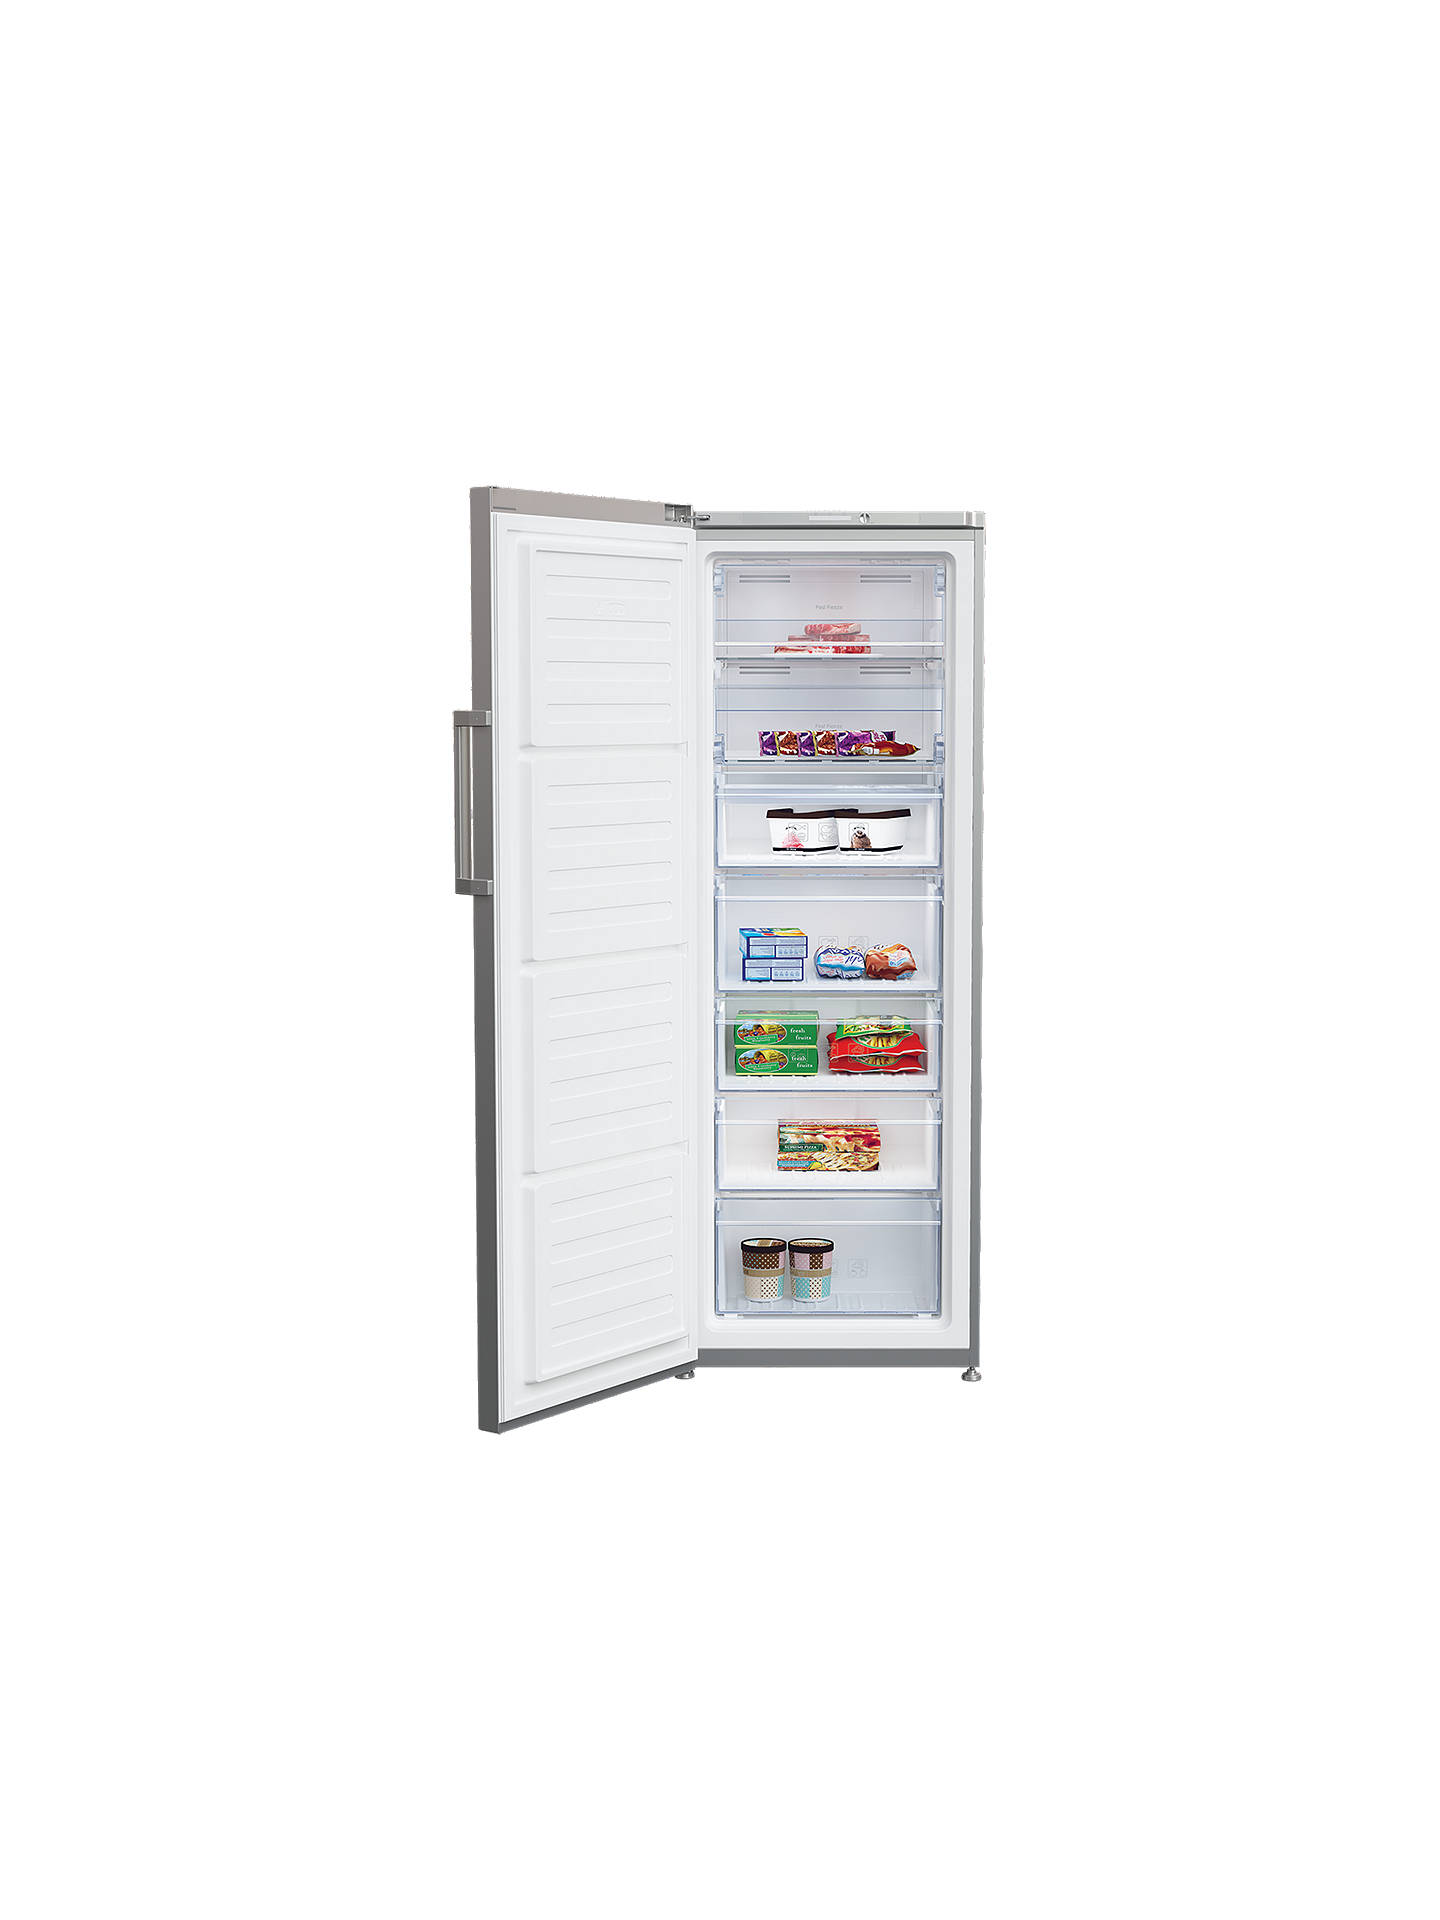 BuyBeko FFP1671S Tall Freezer, A+ Energy Rating, 60cm Wide, Silver Online at johnlewis.com